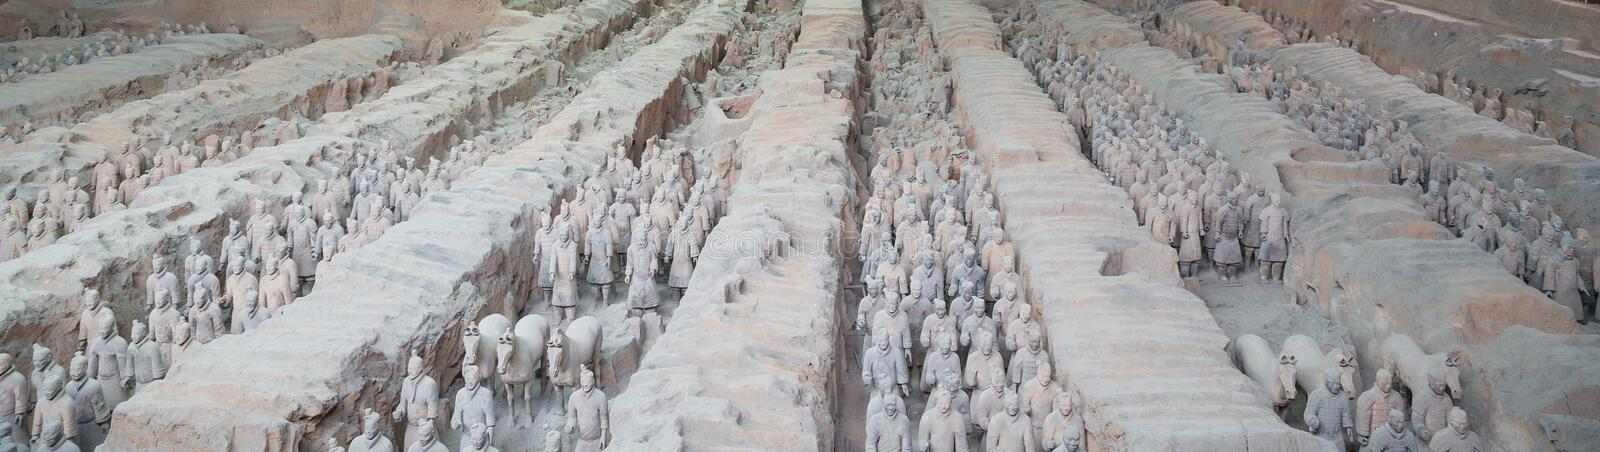 Download Qin Dynasty Terracotta Army, Xian (Sian), China Stock Image - Image: 36992403